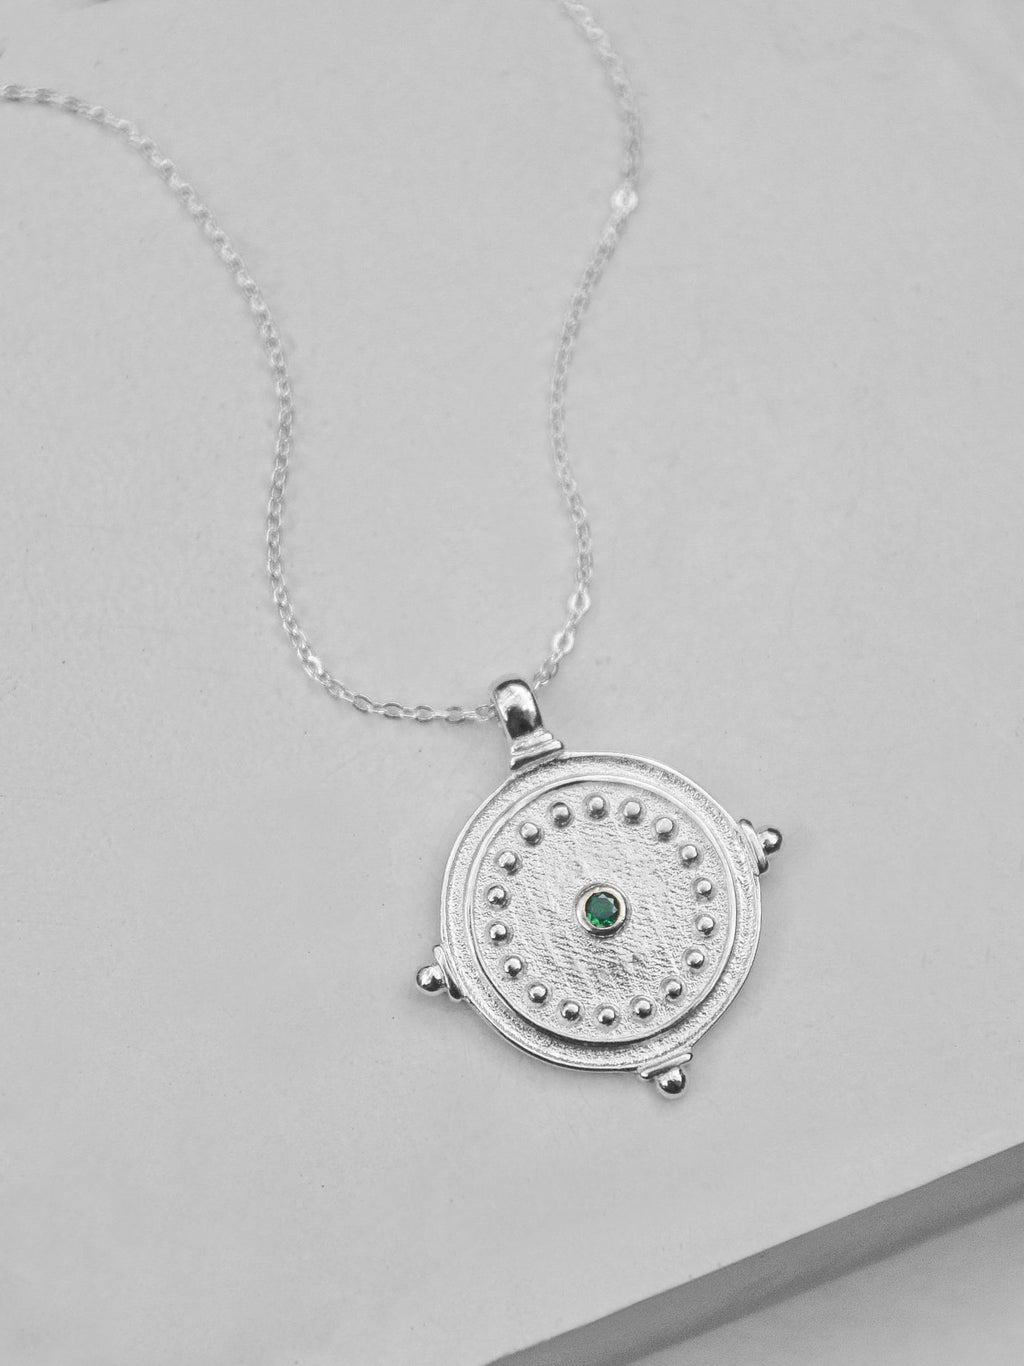 Rhodium Plated Antique Coin Necklace by The Faint Hearted Jewelry